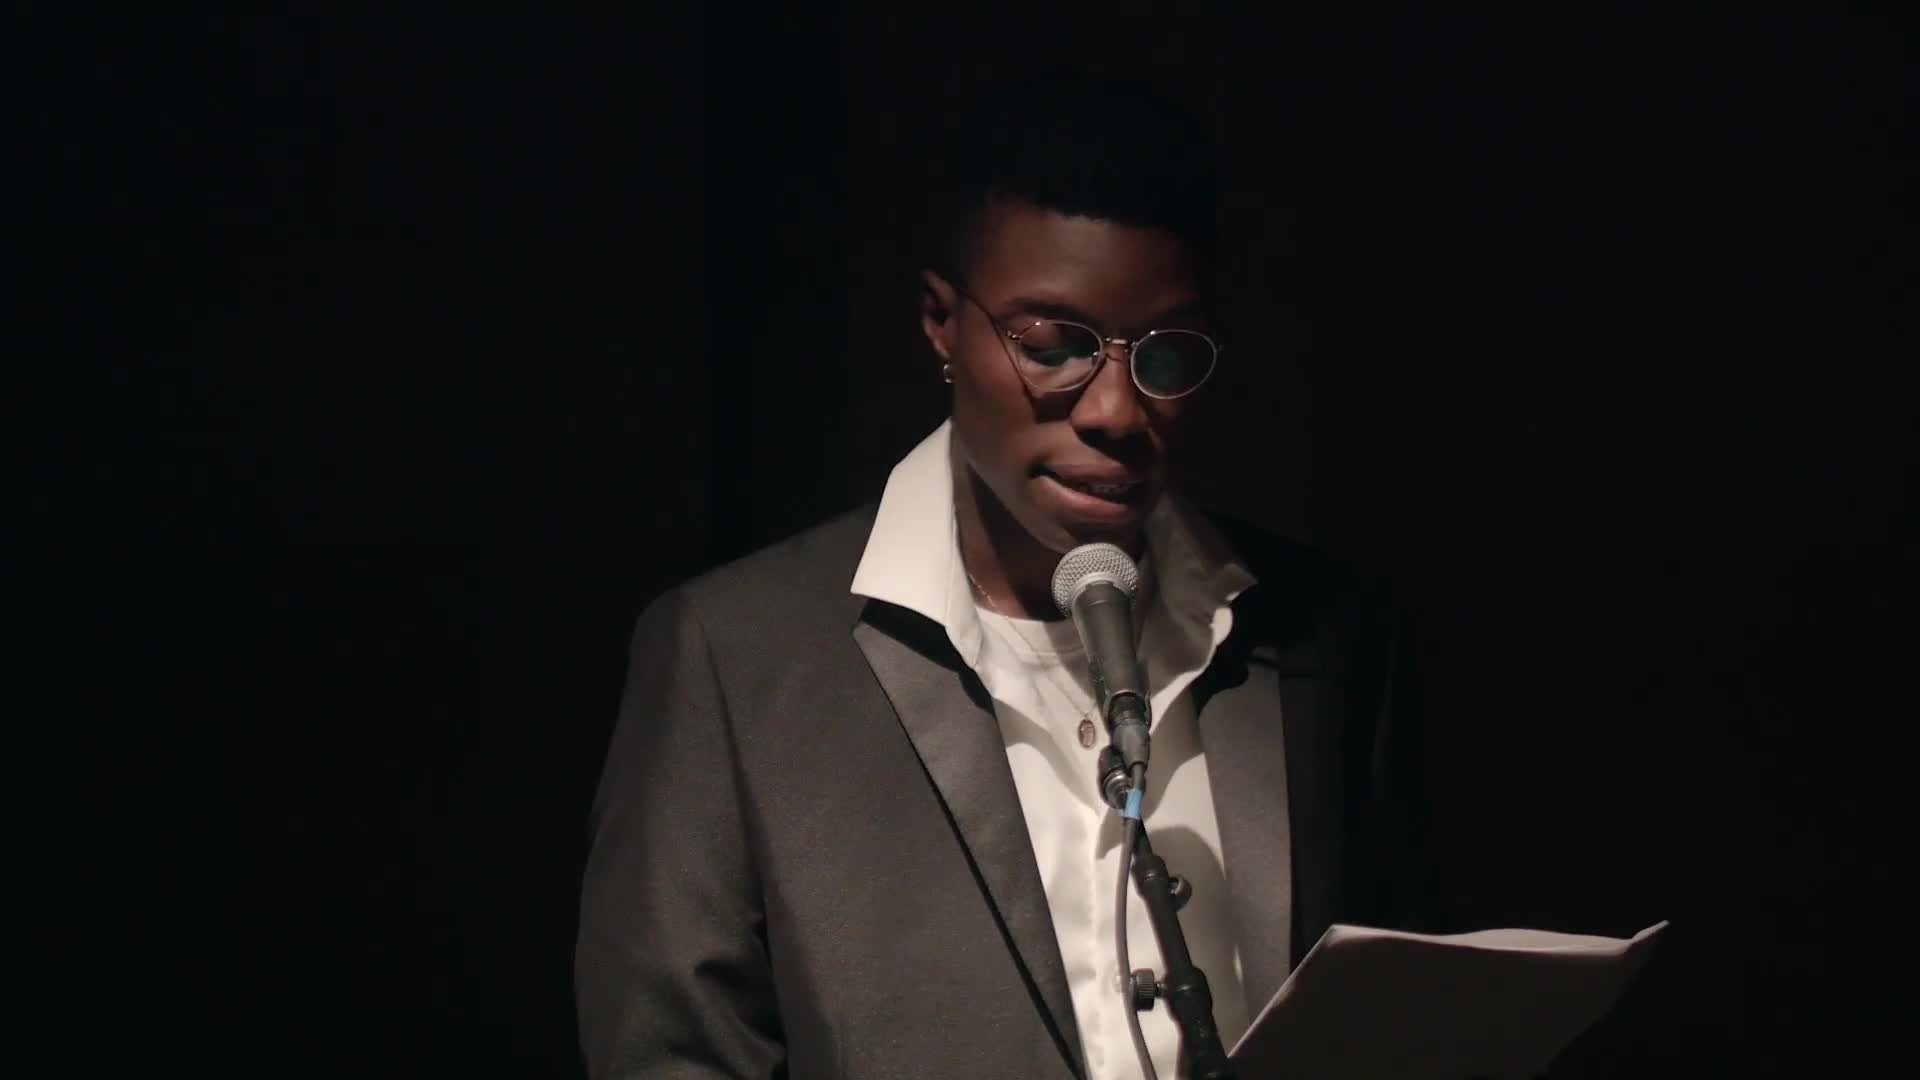 Aria Dean enters the spotlit center of a dark room, sets down a glass of water, and adjusts the microphone to the correct height.  She is wearing a black suit with a white shirt and reads off of a piece of paper in her right hand to a seated audience.